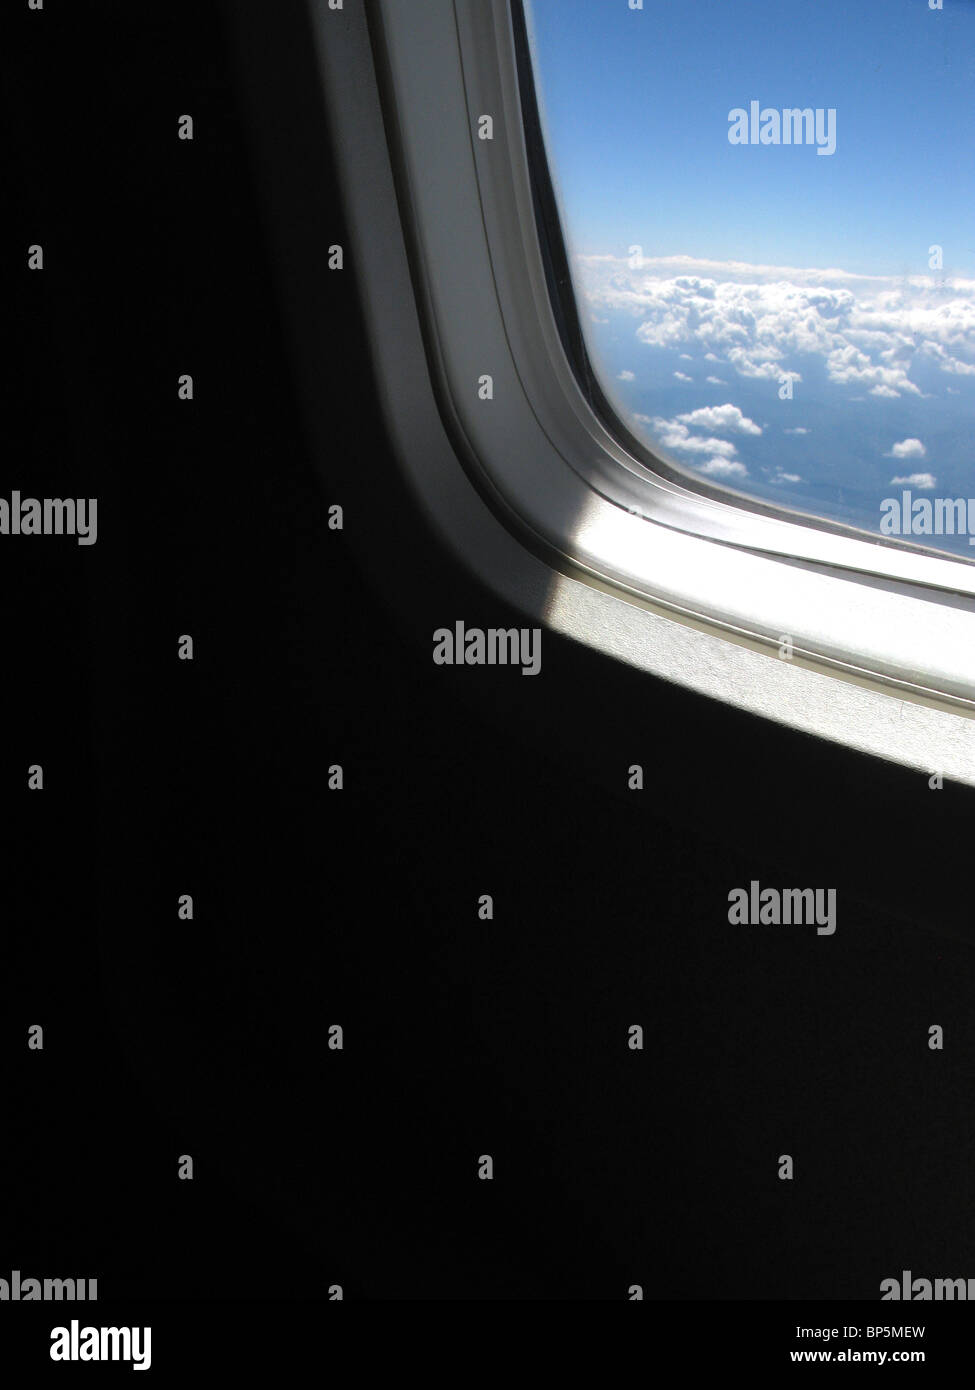 A passenger's view of an airplane's window outside, daylight with blue sky and clouds - Stock Image